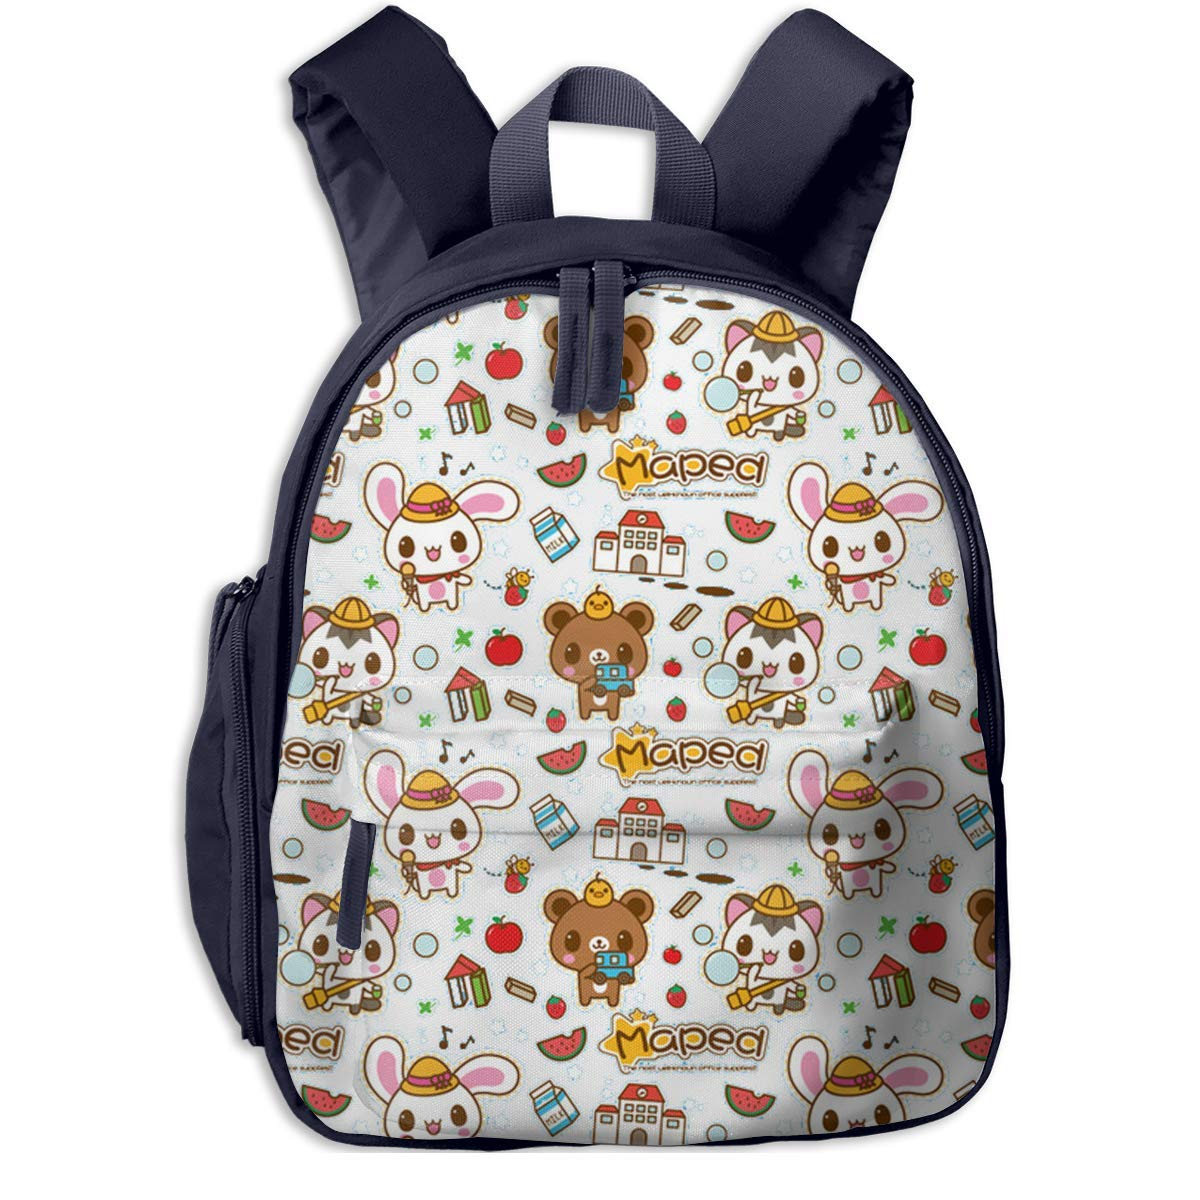 School Backpack for Girls Boys, Kids Cute Rabbit Bear Cartoon Backpacks Book Bag B07MNS2V8B Daypacks Geschwindigkeitsrückerstattung